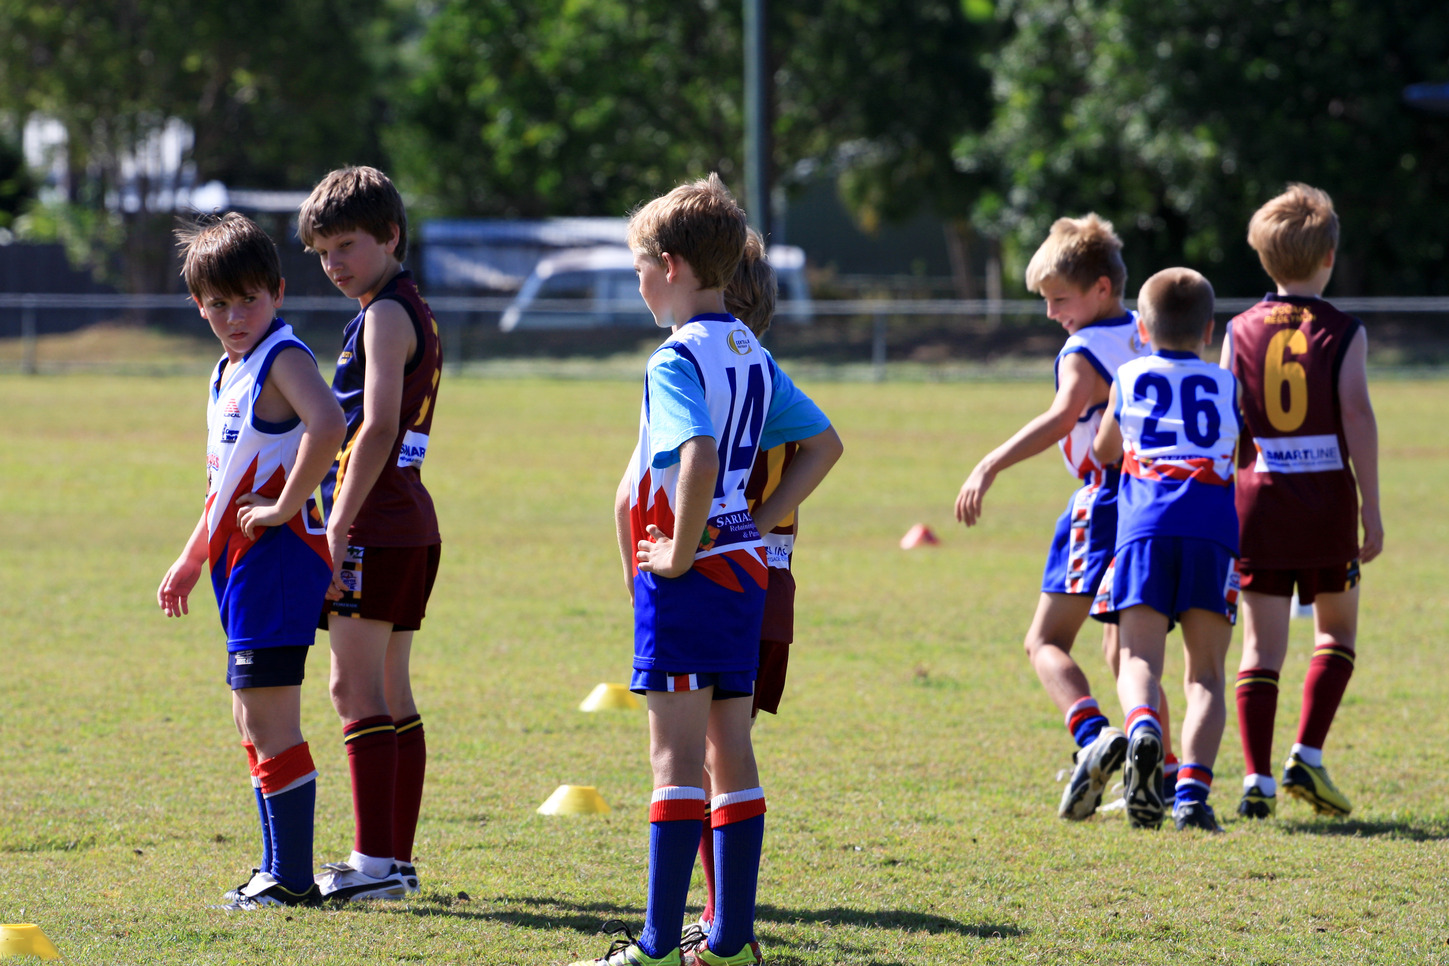 sport in education Education week contributing writer bryan toporek brings you k-12 sports coverage that reaches far beyond box scores he has written about education for education week and education week teacher, high school sports for the falls church news-press in virginia, and is currently a quality editor for bleacher report.